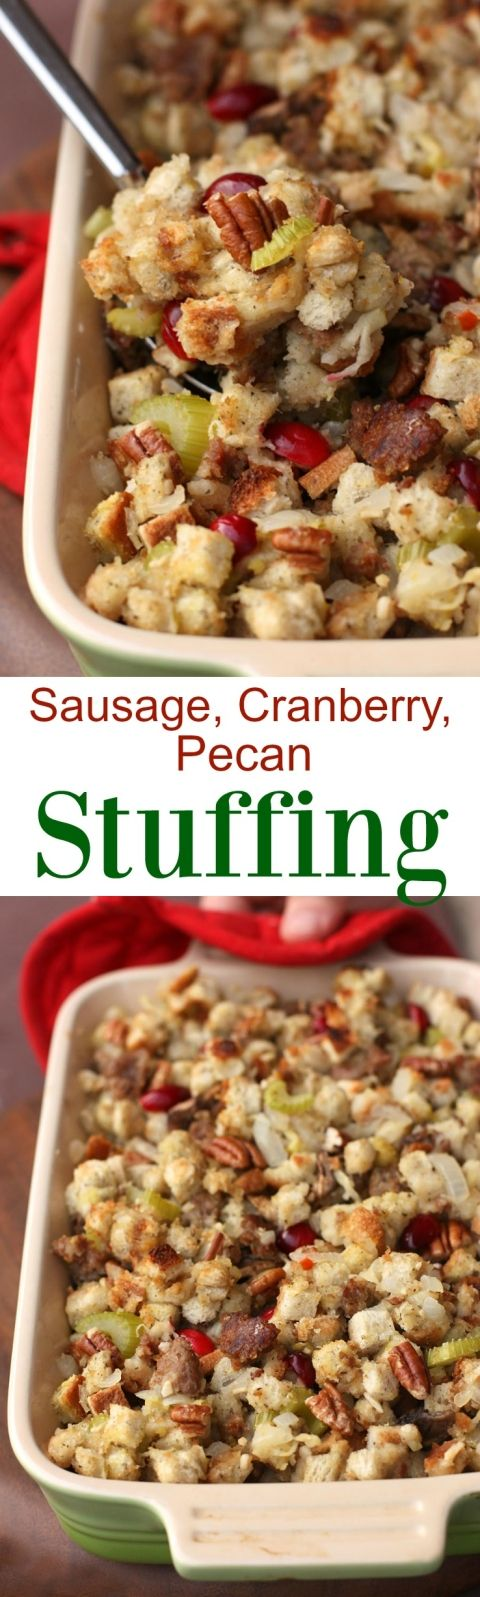 Sausage Cranberry Pecan Stuffing | Tastes Better From Scratch